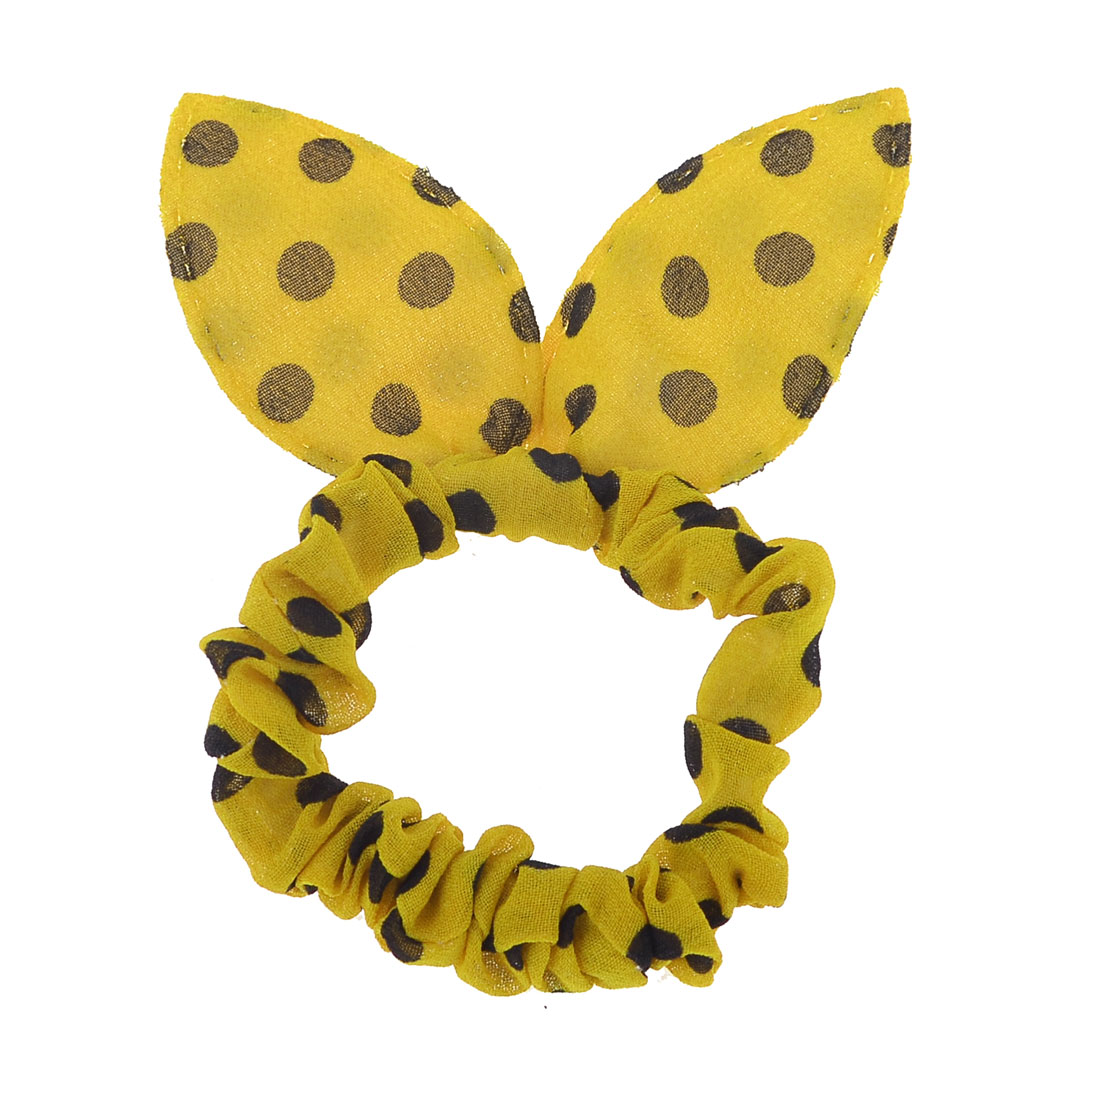 Girls Black Polka Dots Print Rabbit Ear Stretch Hair Tie Ponytail Holder Yellow